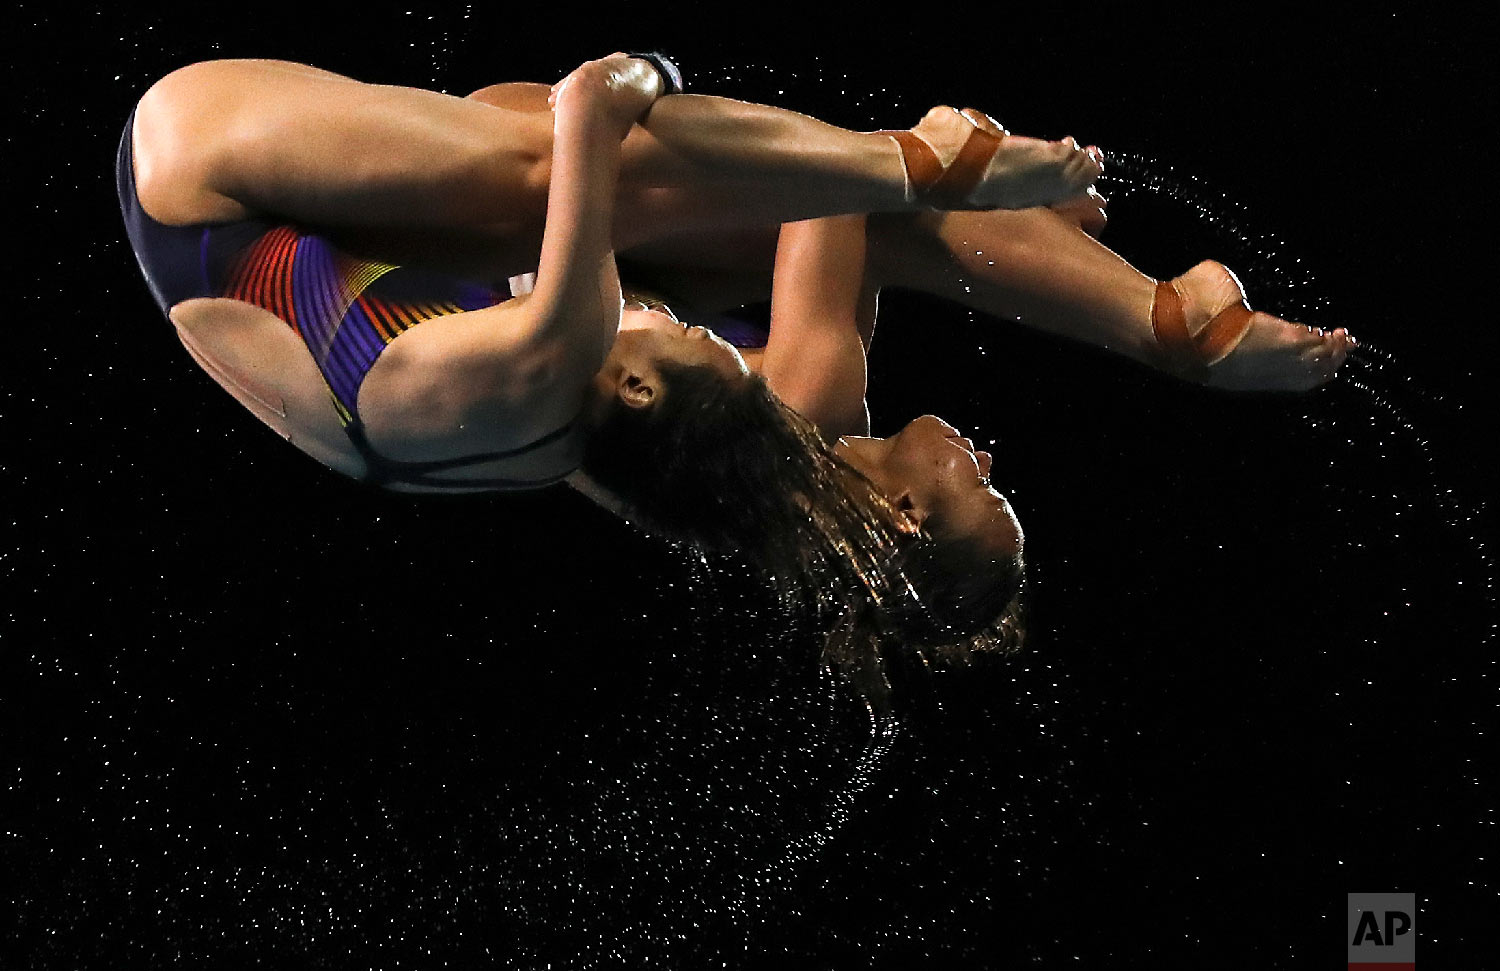 Malaysia's Jun Hoong Cheong and Pandelela Rinong Pamg dives on their way to winning gold in the women's synchronised 10m platform final at the Aquatic Centre during the 2018 Commonwealth Games on the Gold Coast, Australia, Wednesday, April 11, 2018. (AP Photo/Rick Rycroft)